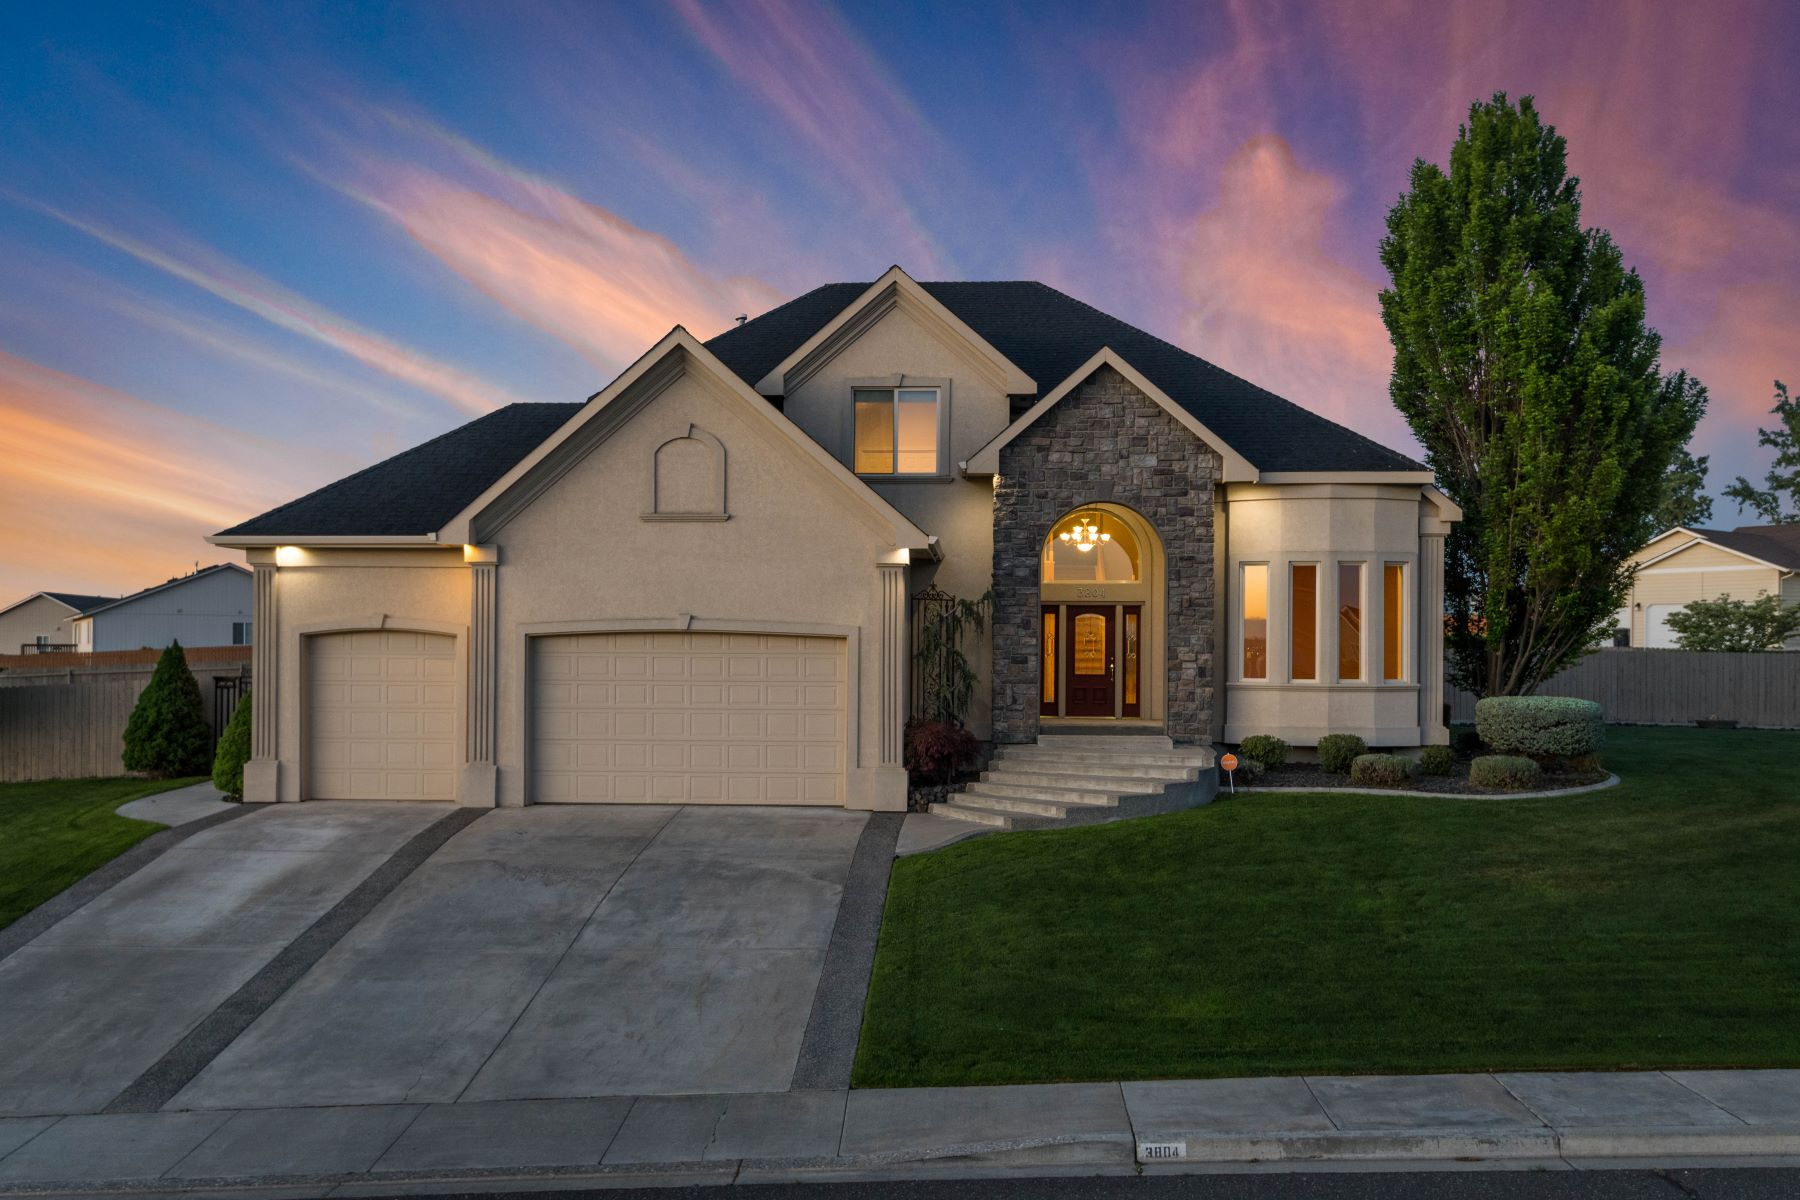 Single Family Homes for Sale at Custom built Pasco home in perfect condition 3804 Tusayan Drive Pasco, Washington 99301 United States